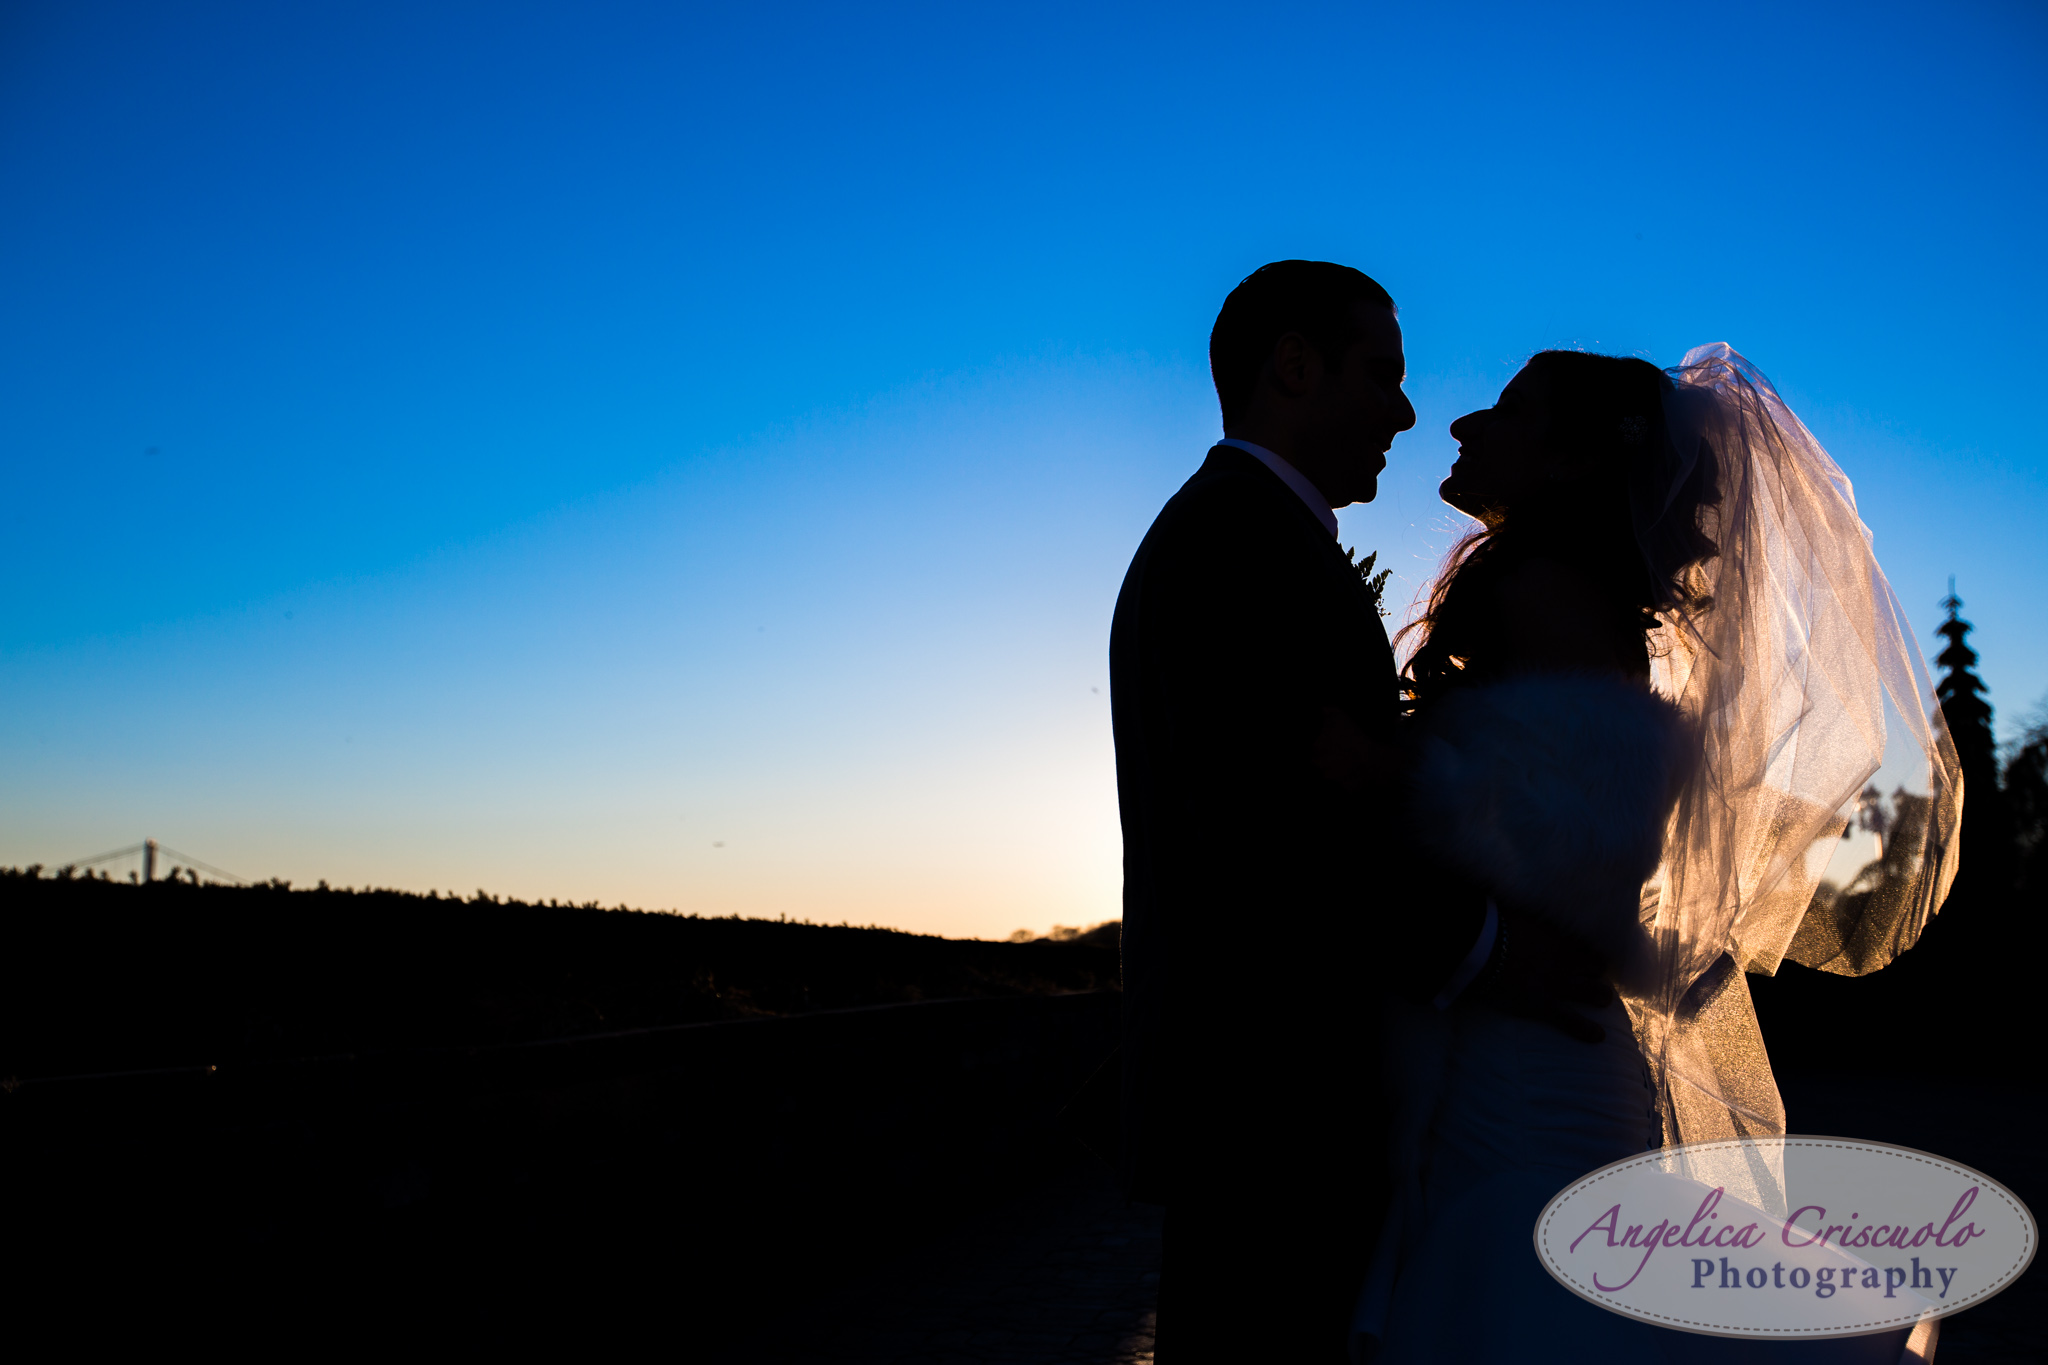 New York Wedding Photographer Sunset Bride and groom photos silhouette